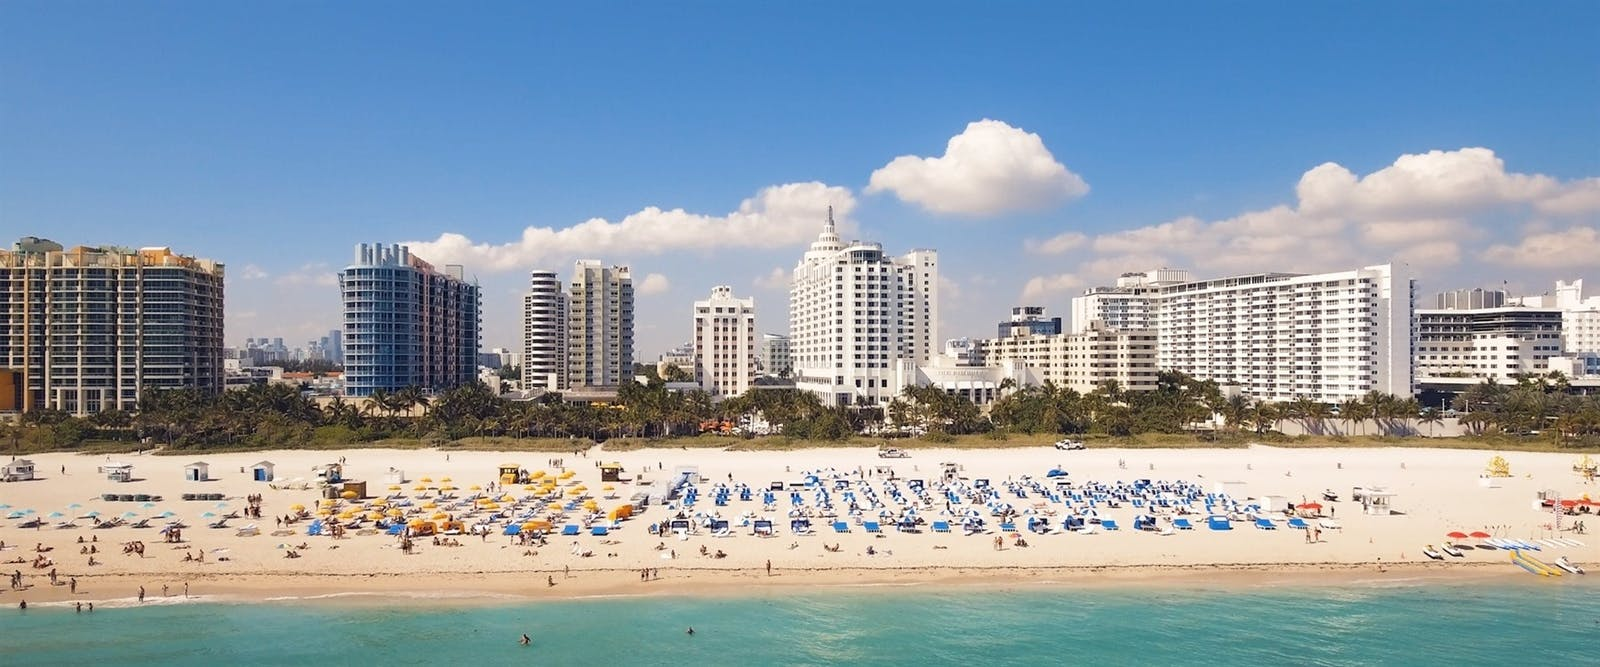 loews miami beach from the atlantic ocean